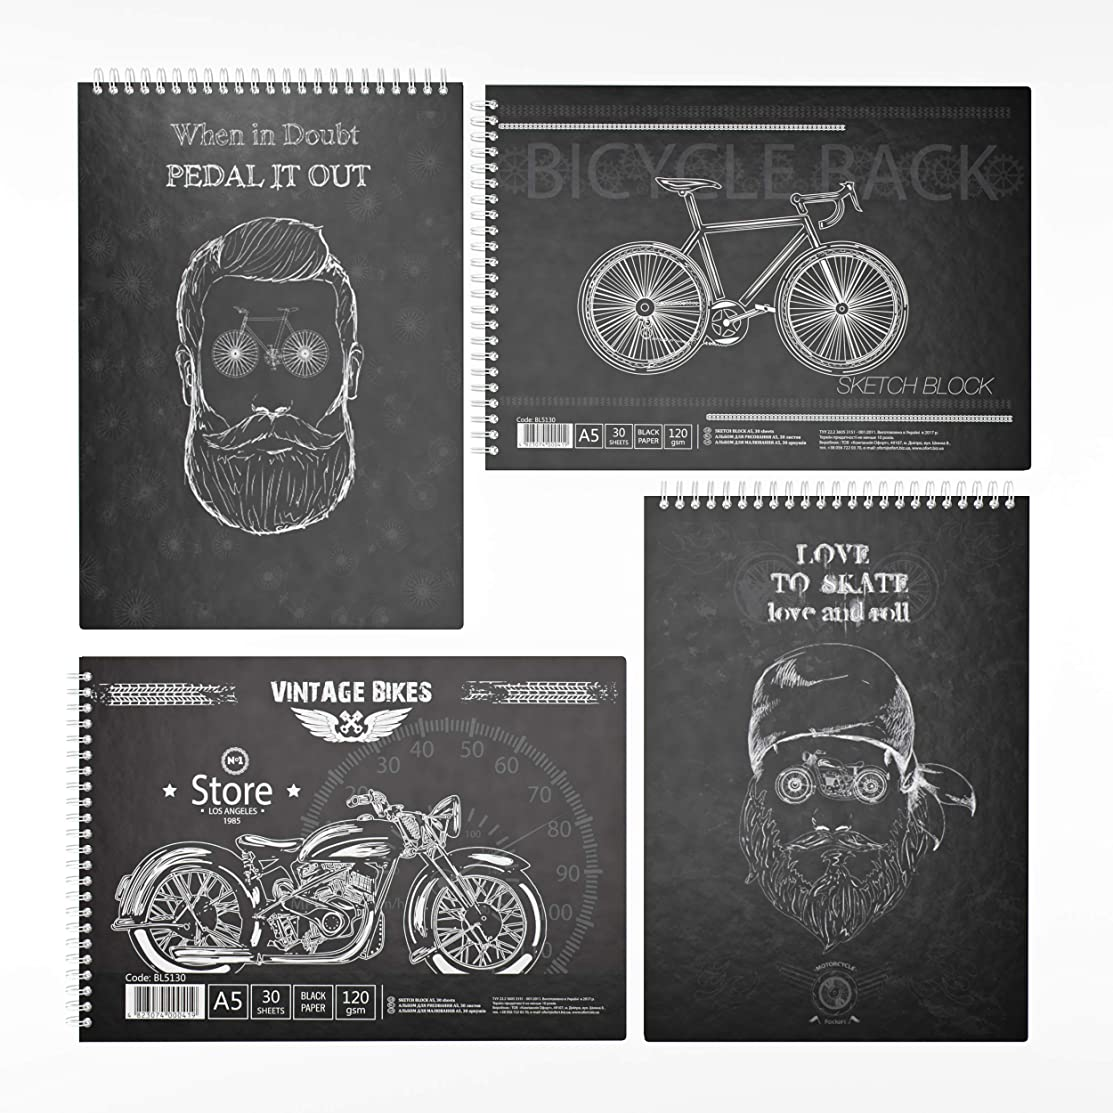 Ride in Adventure Pads ( Black and White Serie | Black Paper Sketchbook | White Grid Ruled Paper Notebook | Spiral Bound | 8 x 5.7 Inch Sheet Size | 4 Pads Set ) KF5280K and BL5130